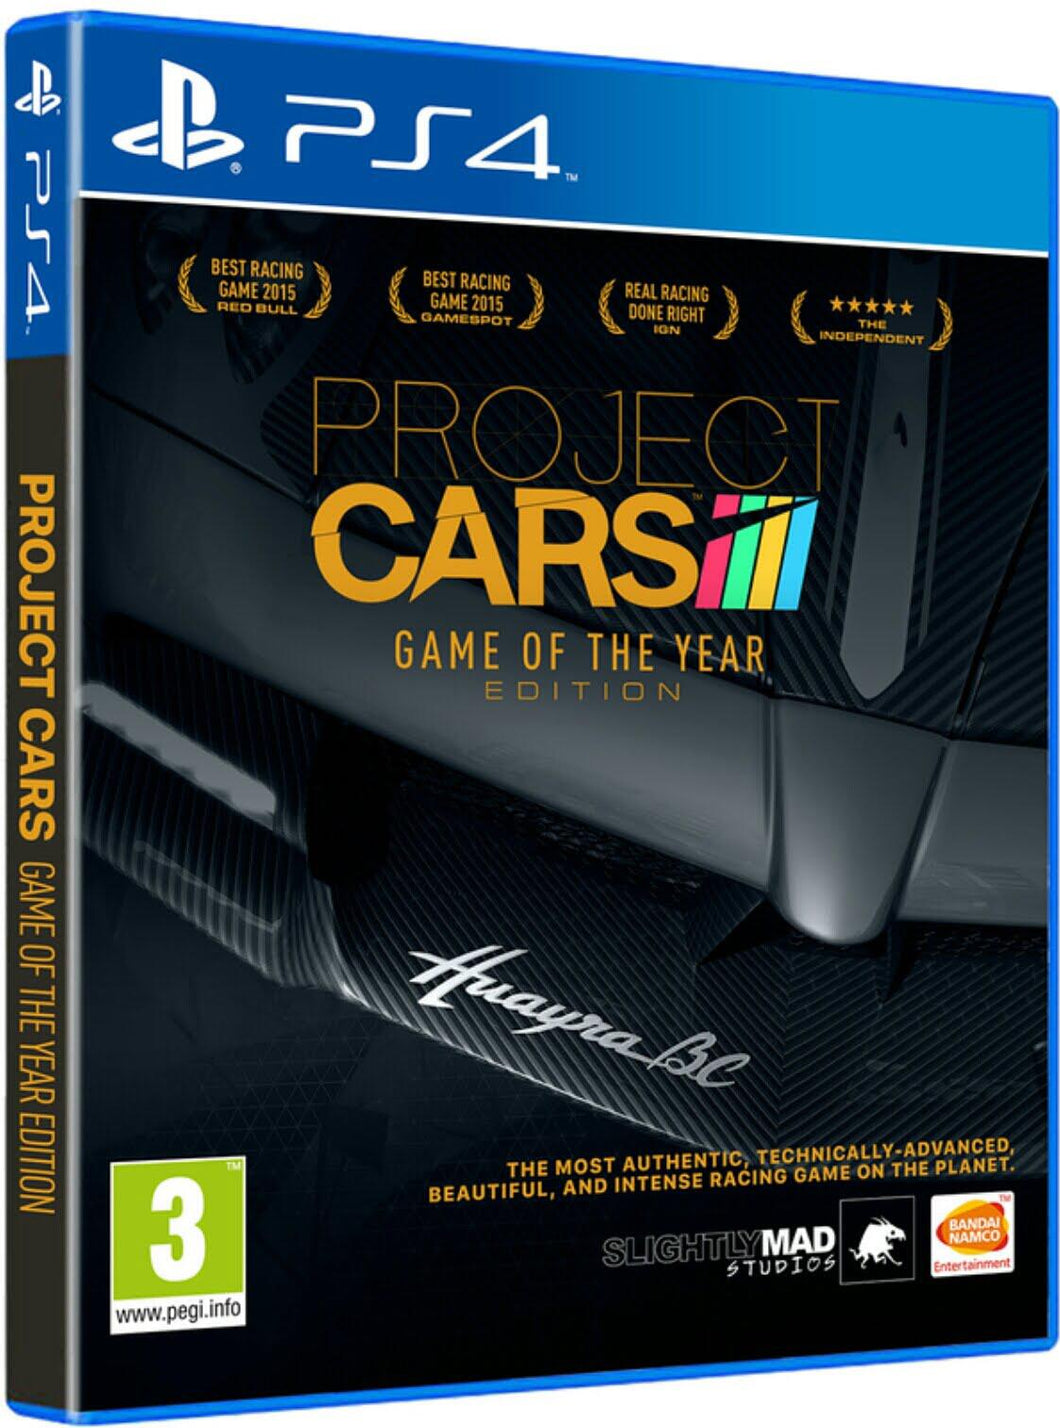 Jogo PS4 - Project Cars Complete Edition